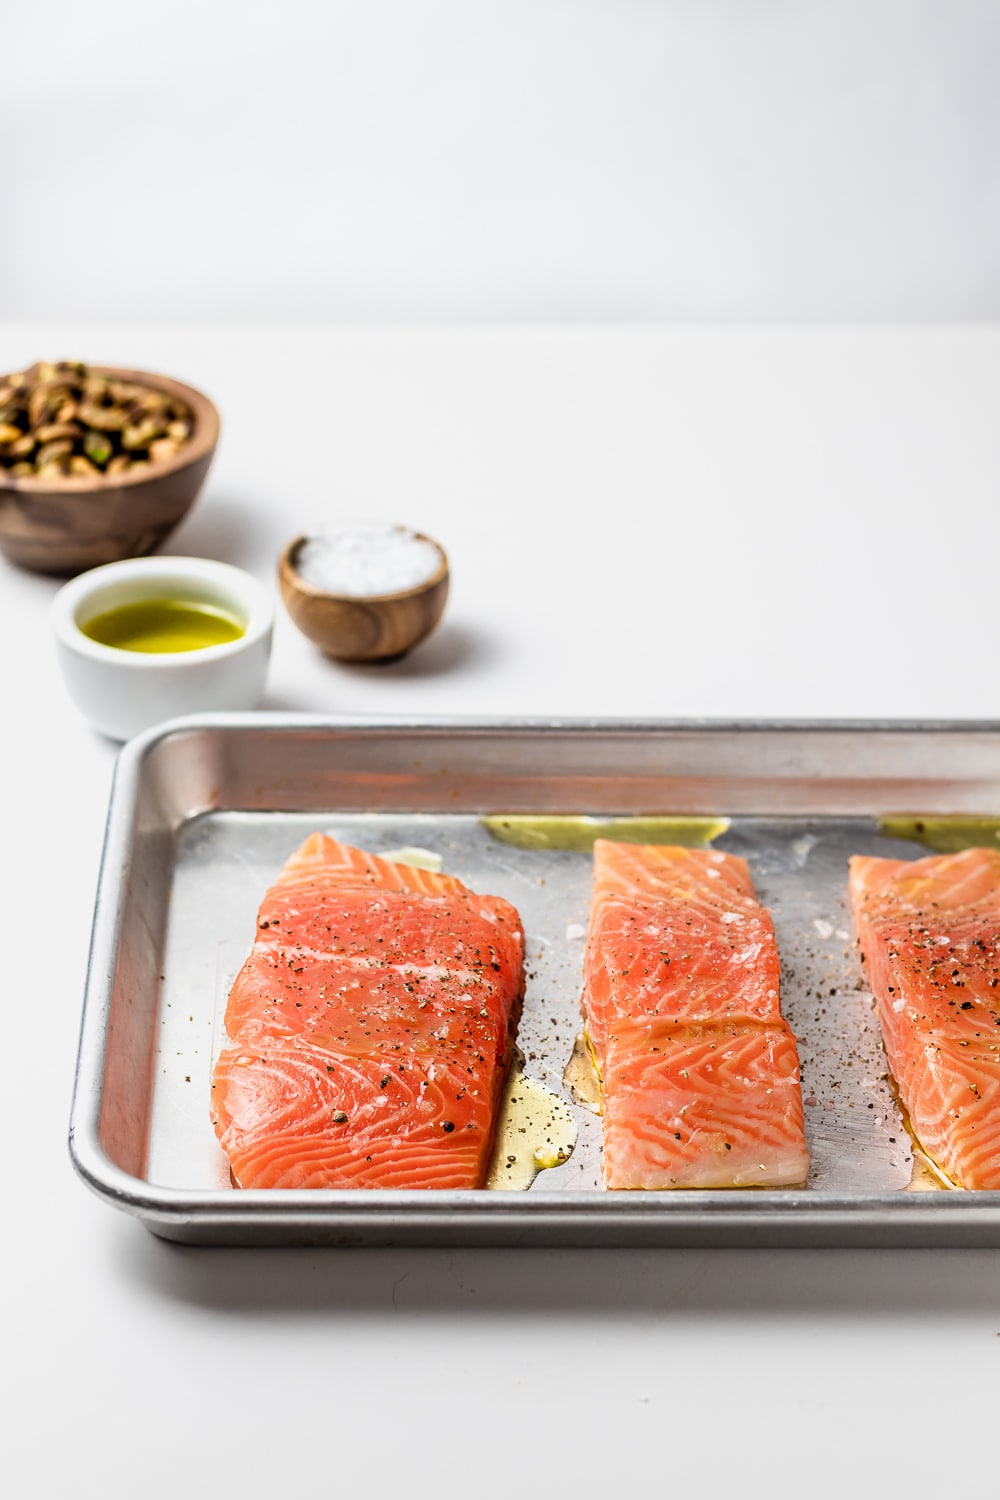 rimmed baking sheet with salmon fillets, bowls of pistachios, olive oil and salt in the background